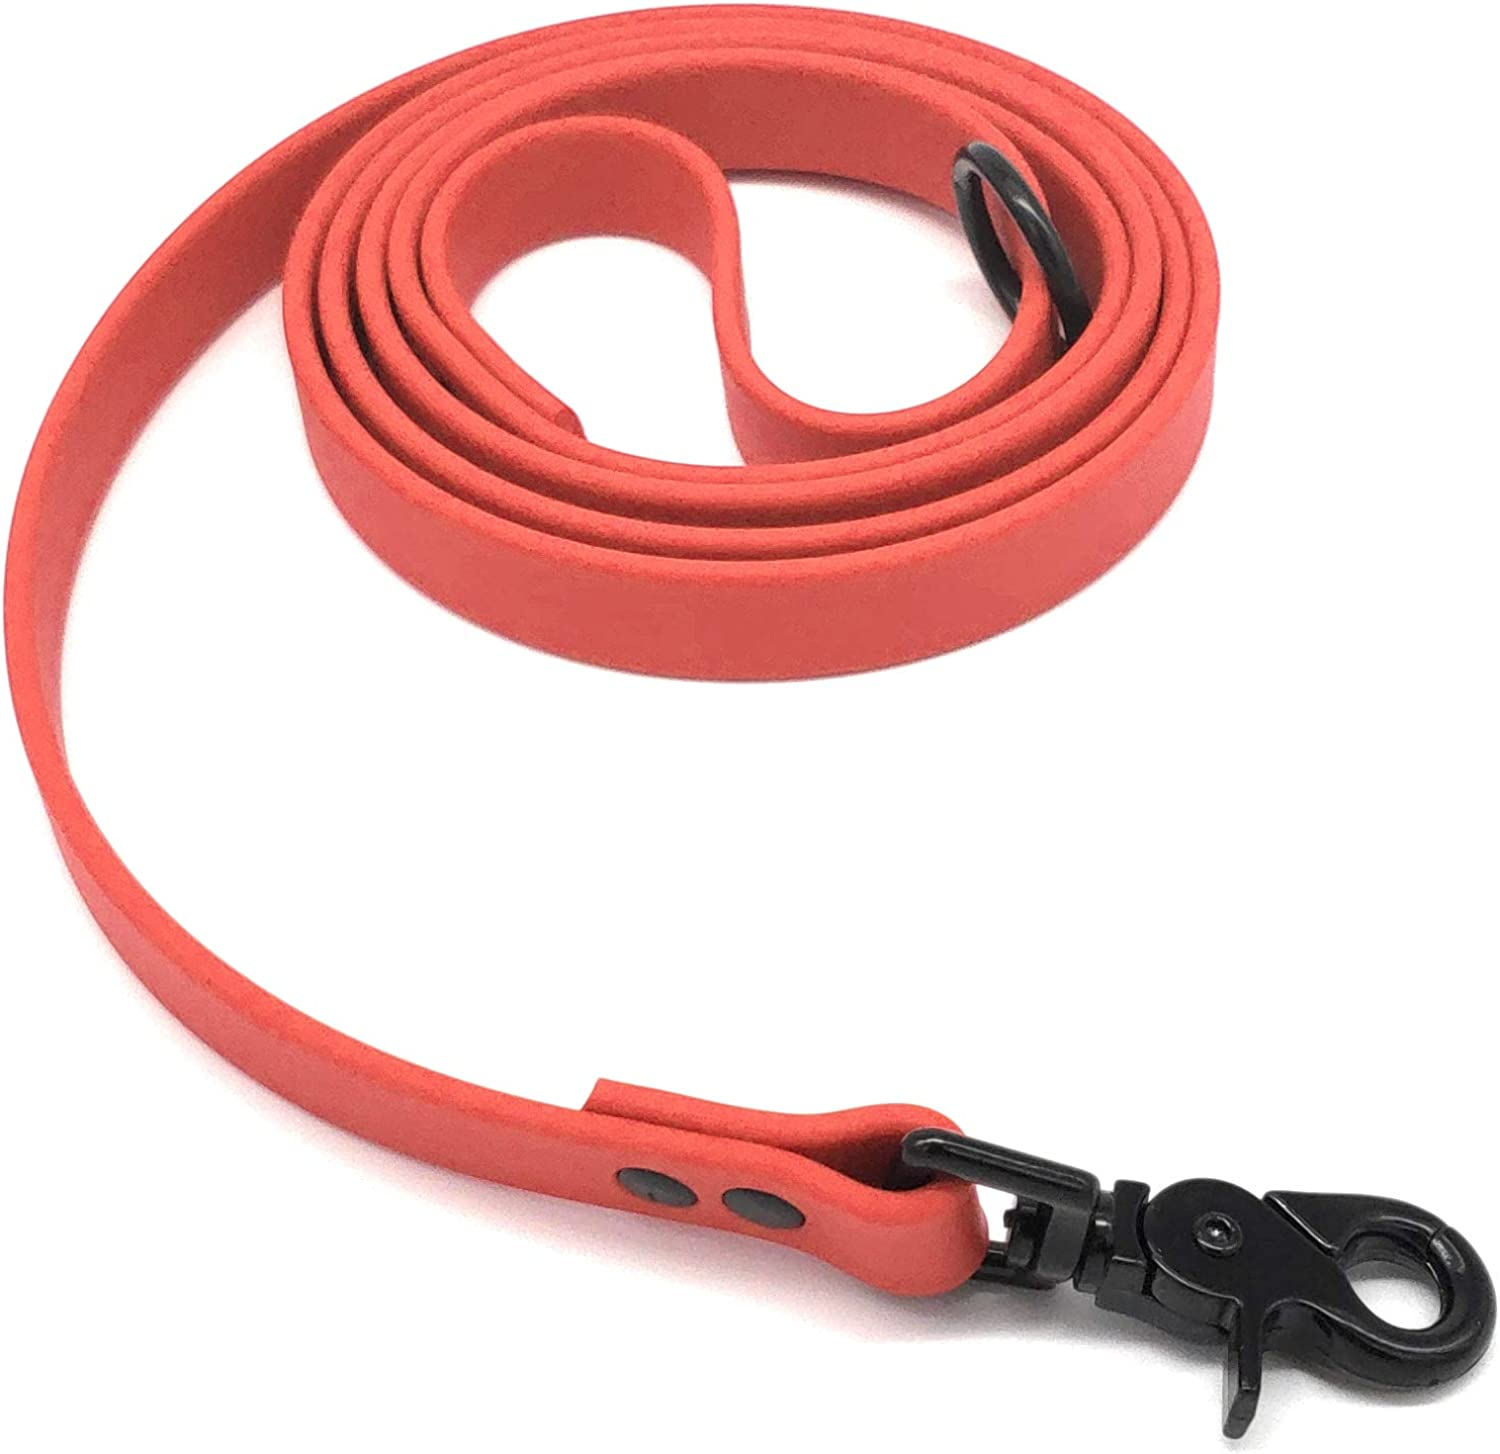 Furbaby Products Dog Training Leash Made for Puppy, Medium, and Large Dogs Made from Biothane Material with Black Hardware (3ft, Red)